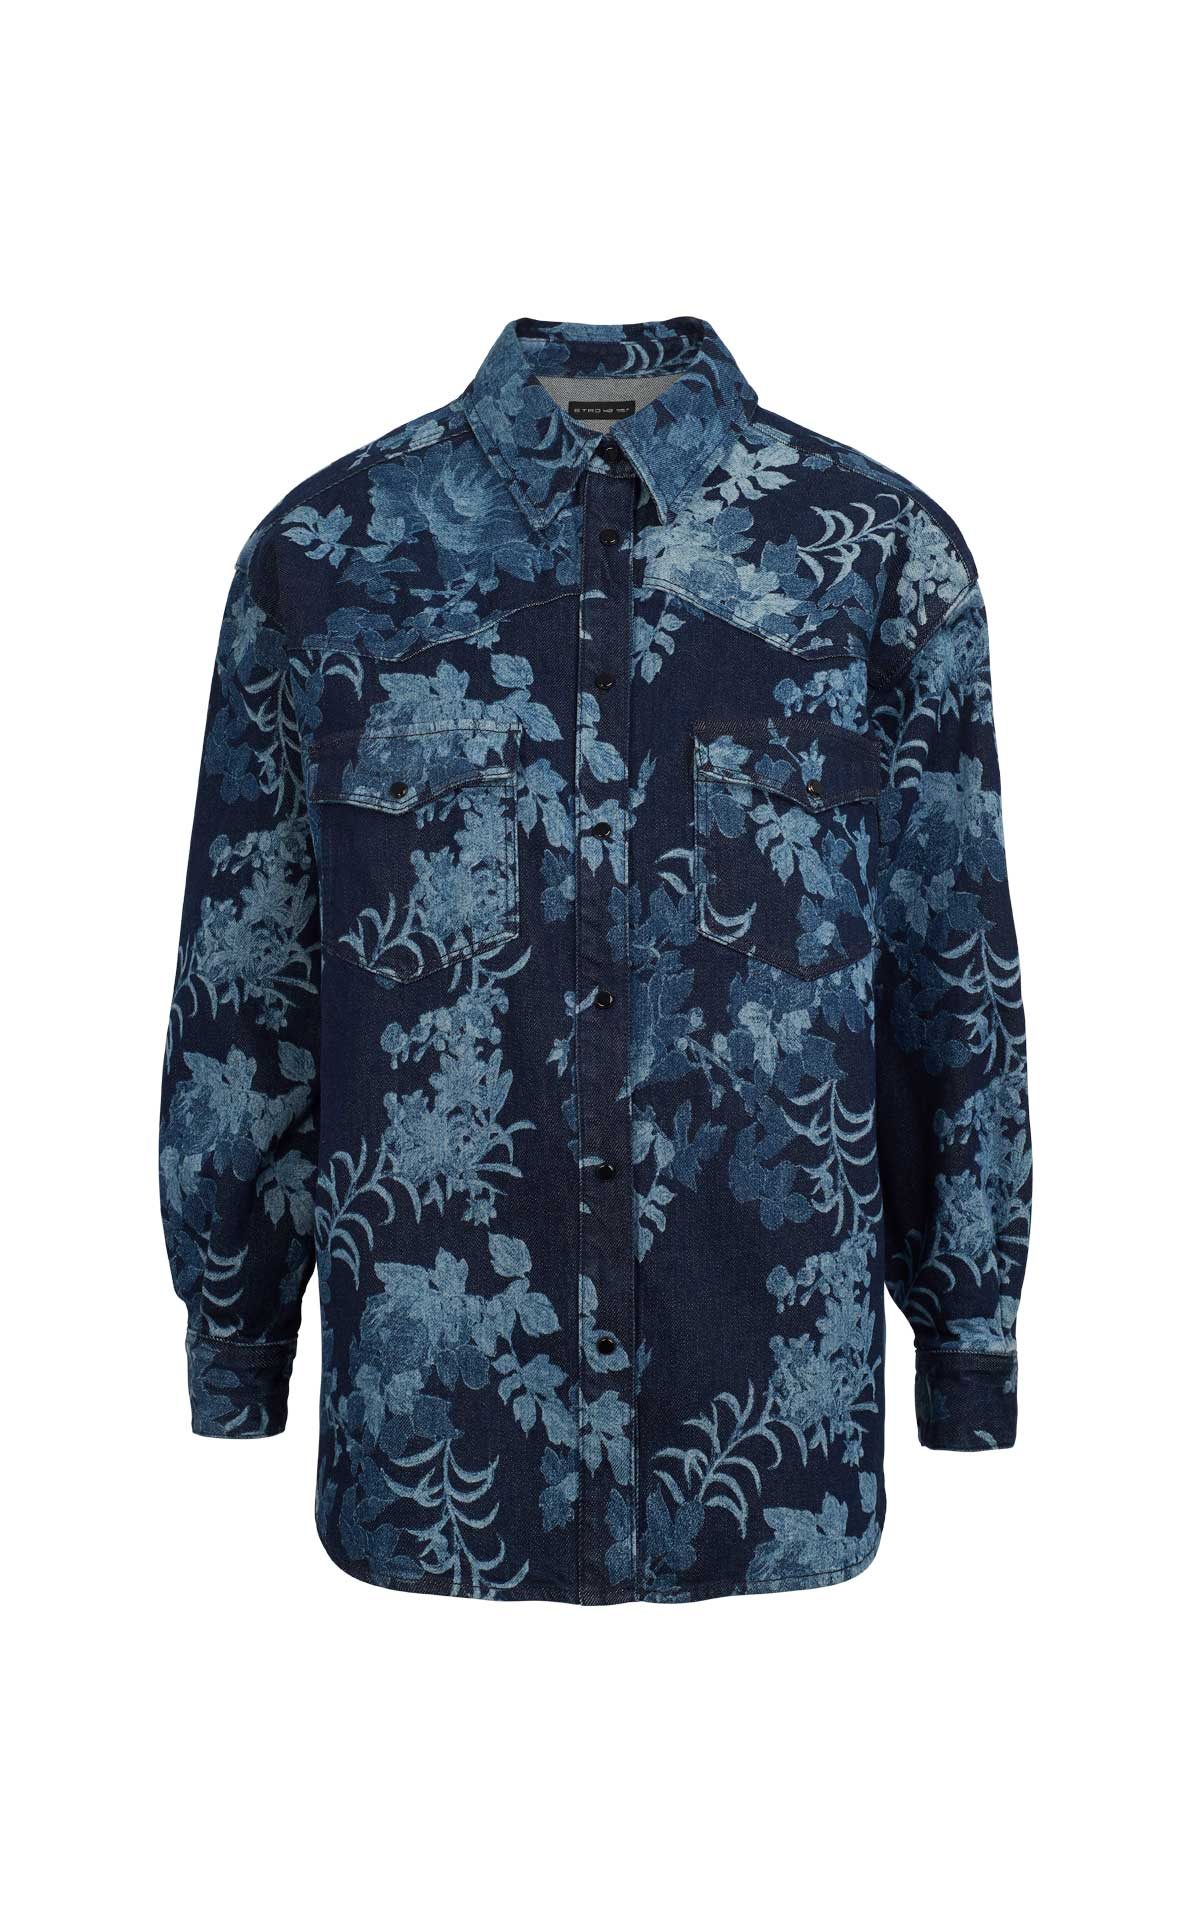 Flowered shirt Etro